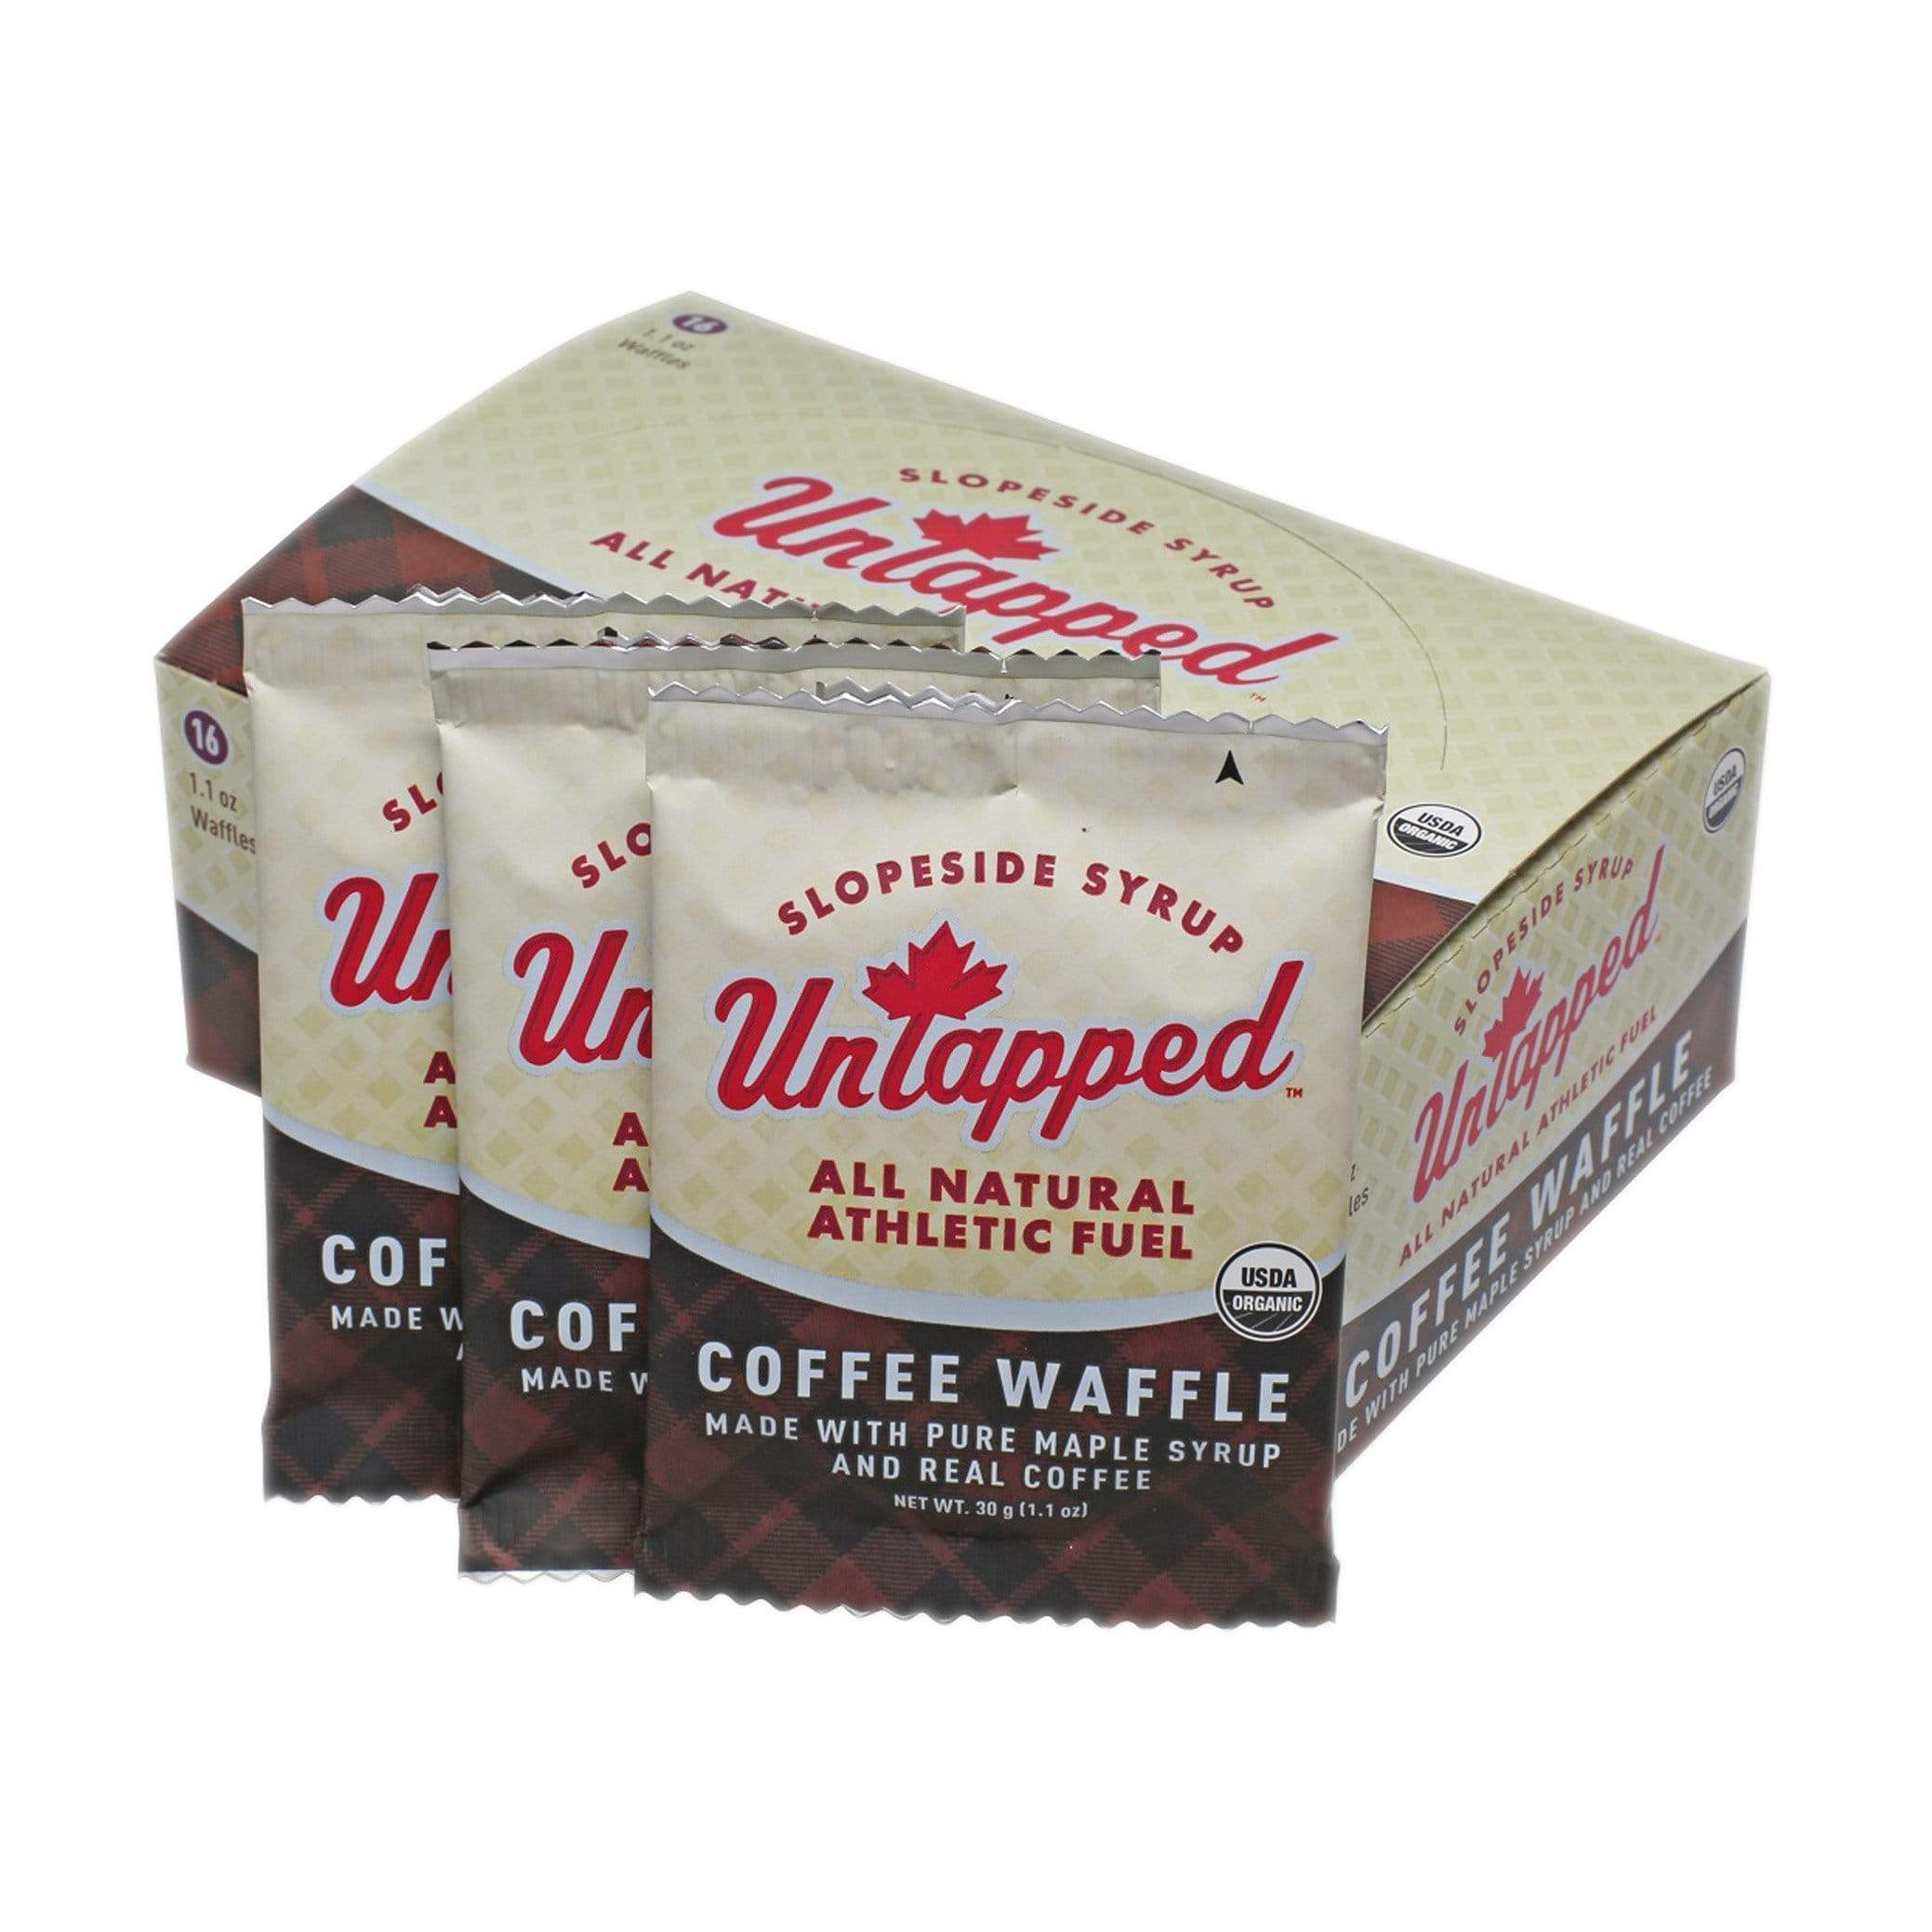 Untapped Waffle - Coffee (with coffee) Waffles 3 Boxes (48 Waffles)